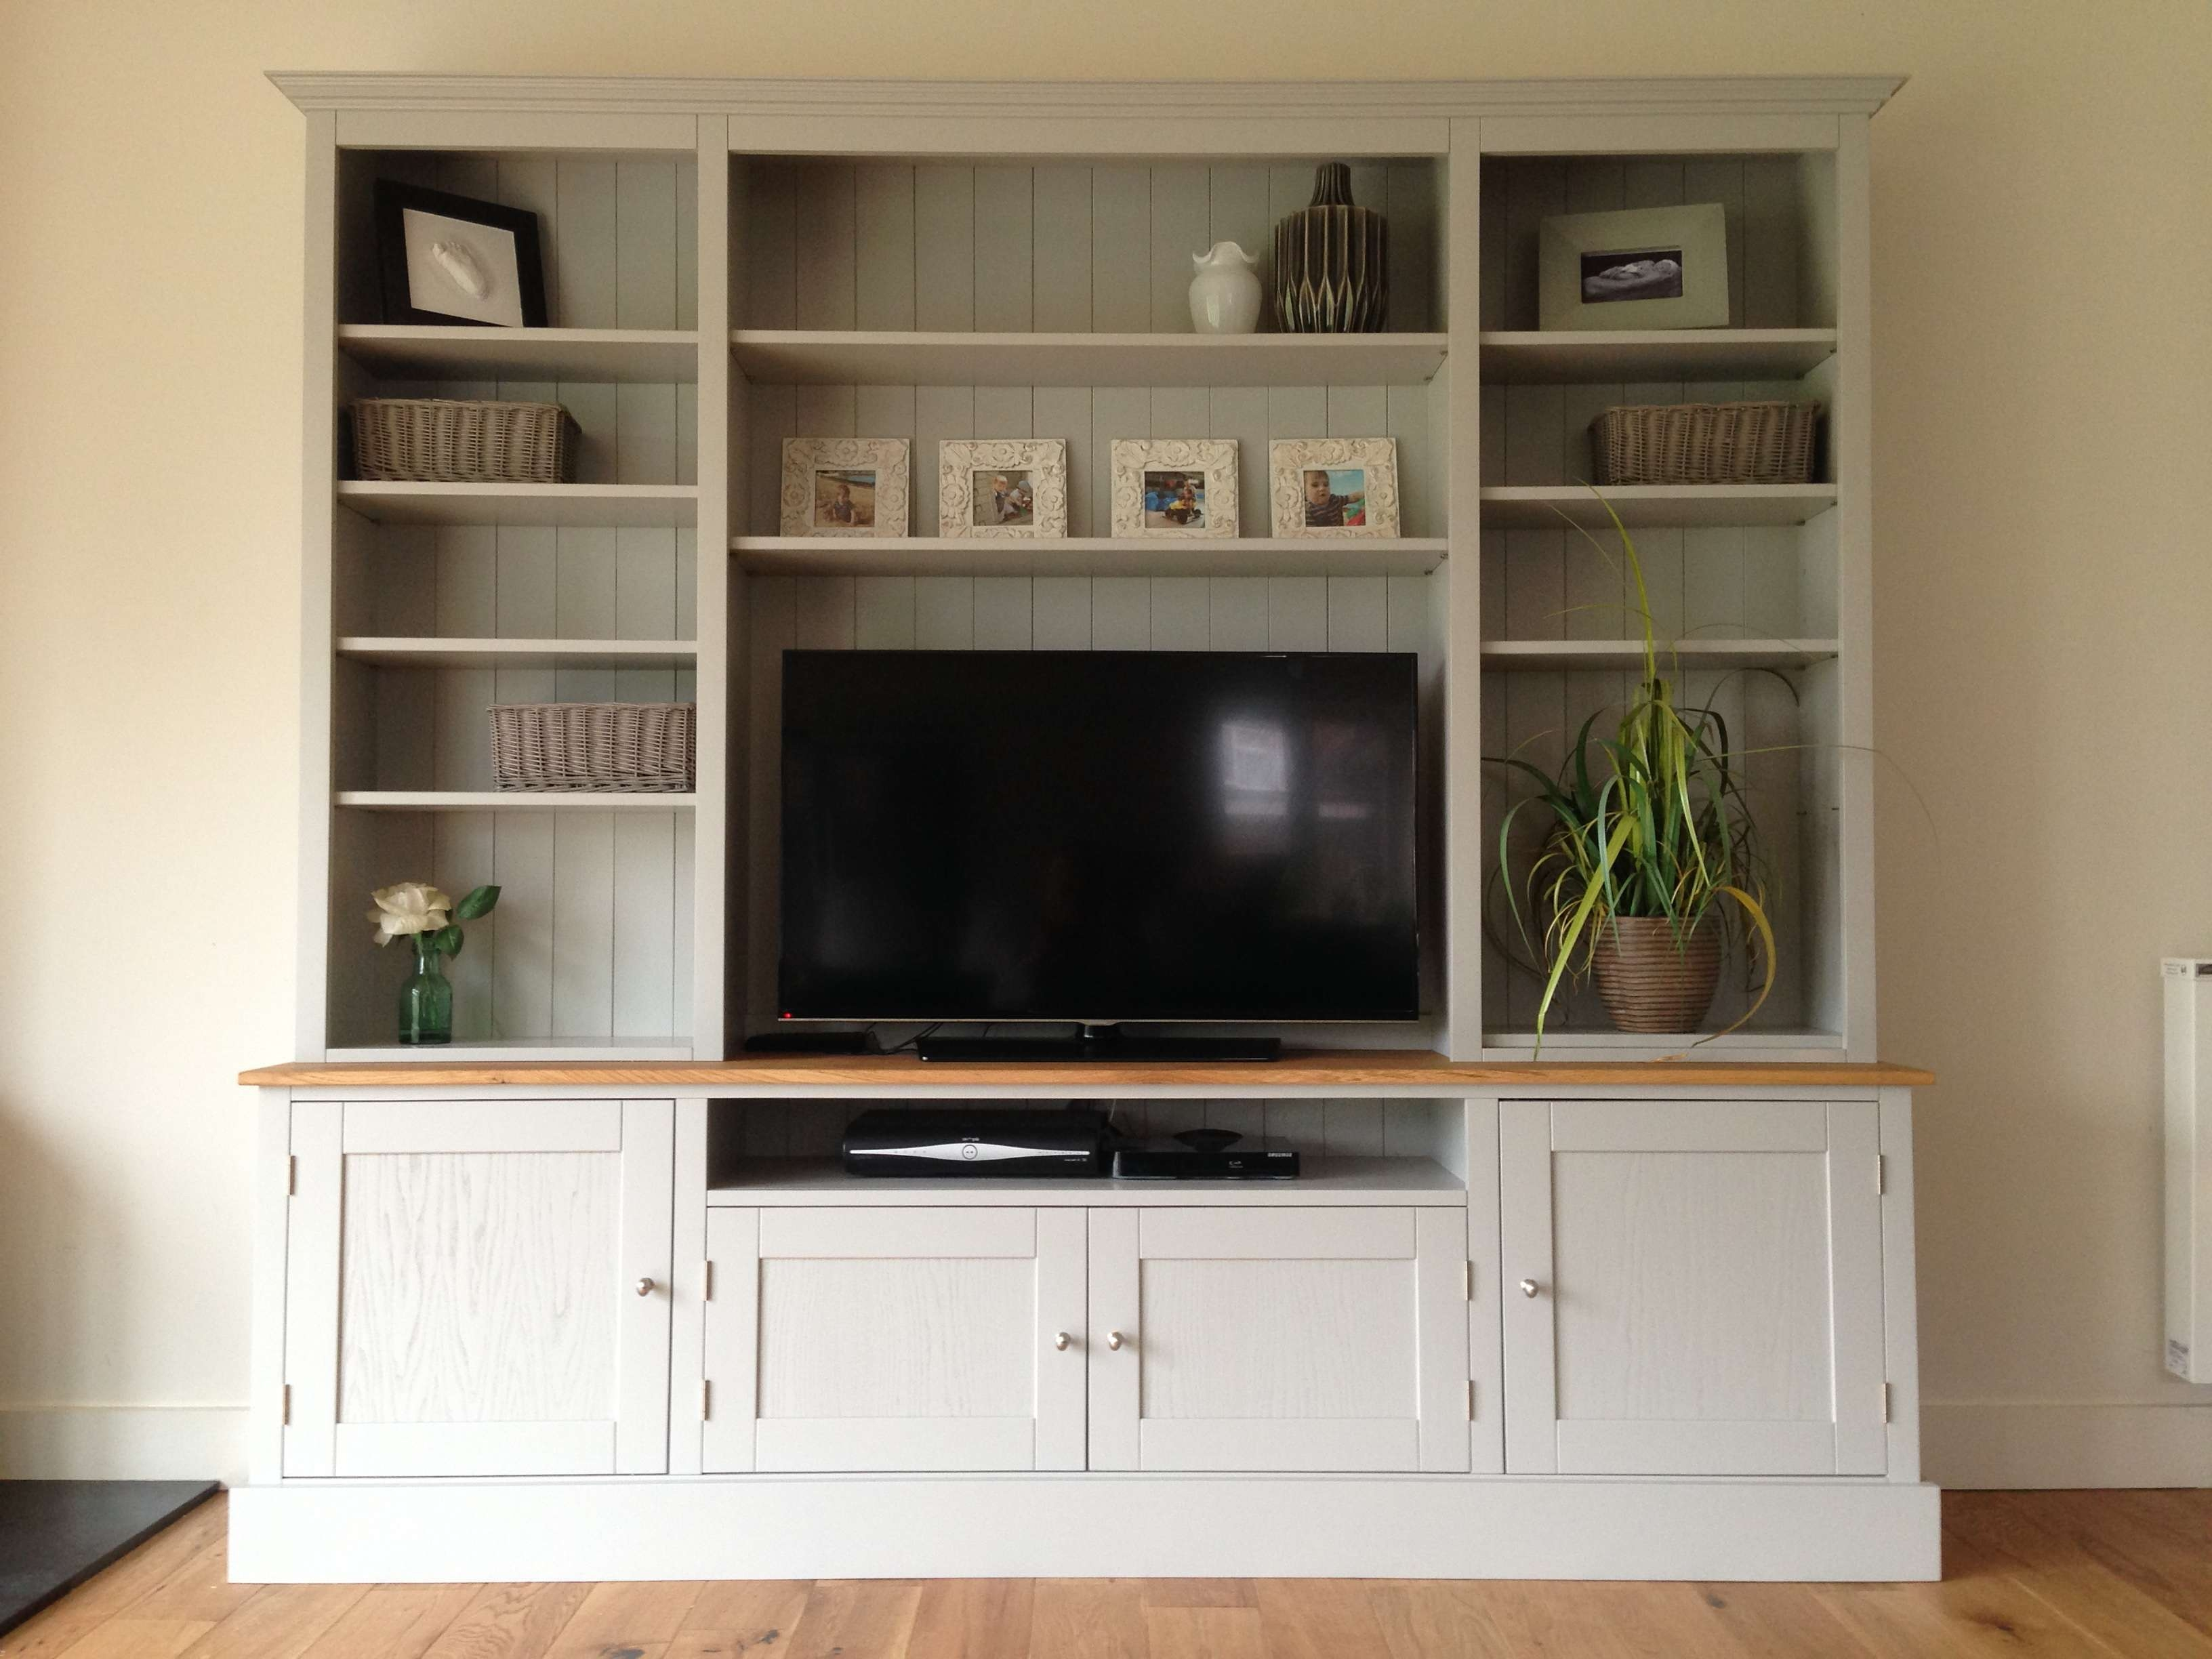 Georgeous 7ft Painted Tv Unit / Dresser – Nest At Number 20 Intended For White Painted Tv Cabinets (View 17 of 20)